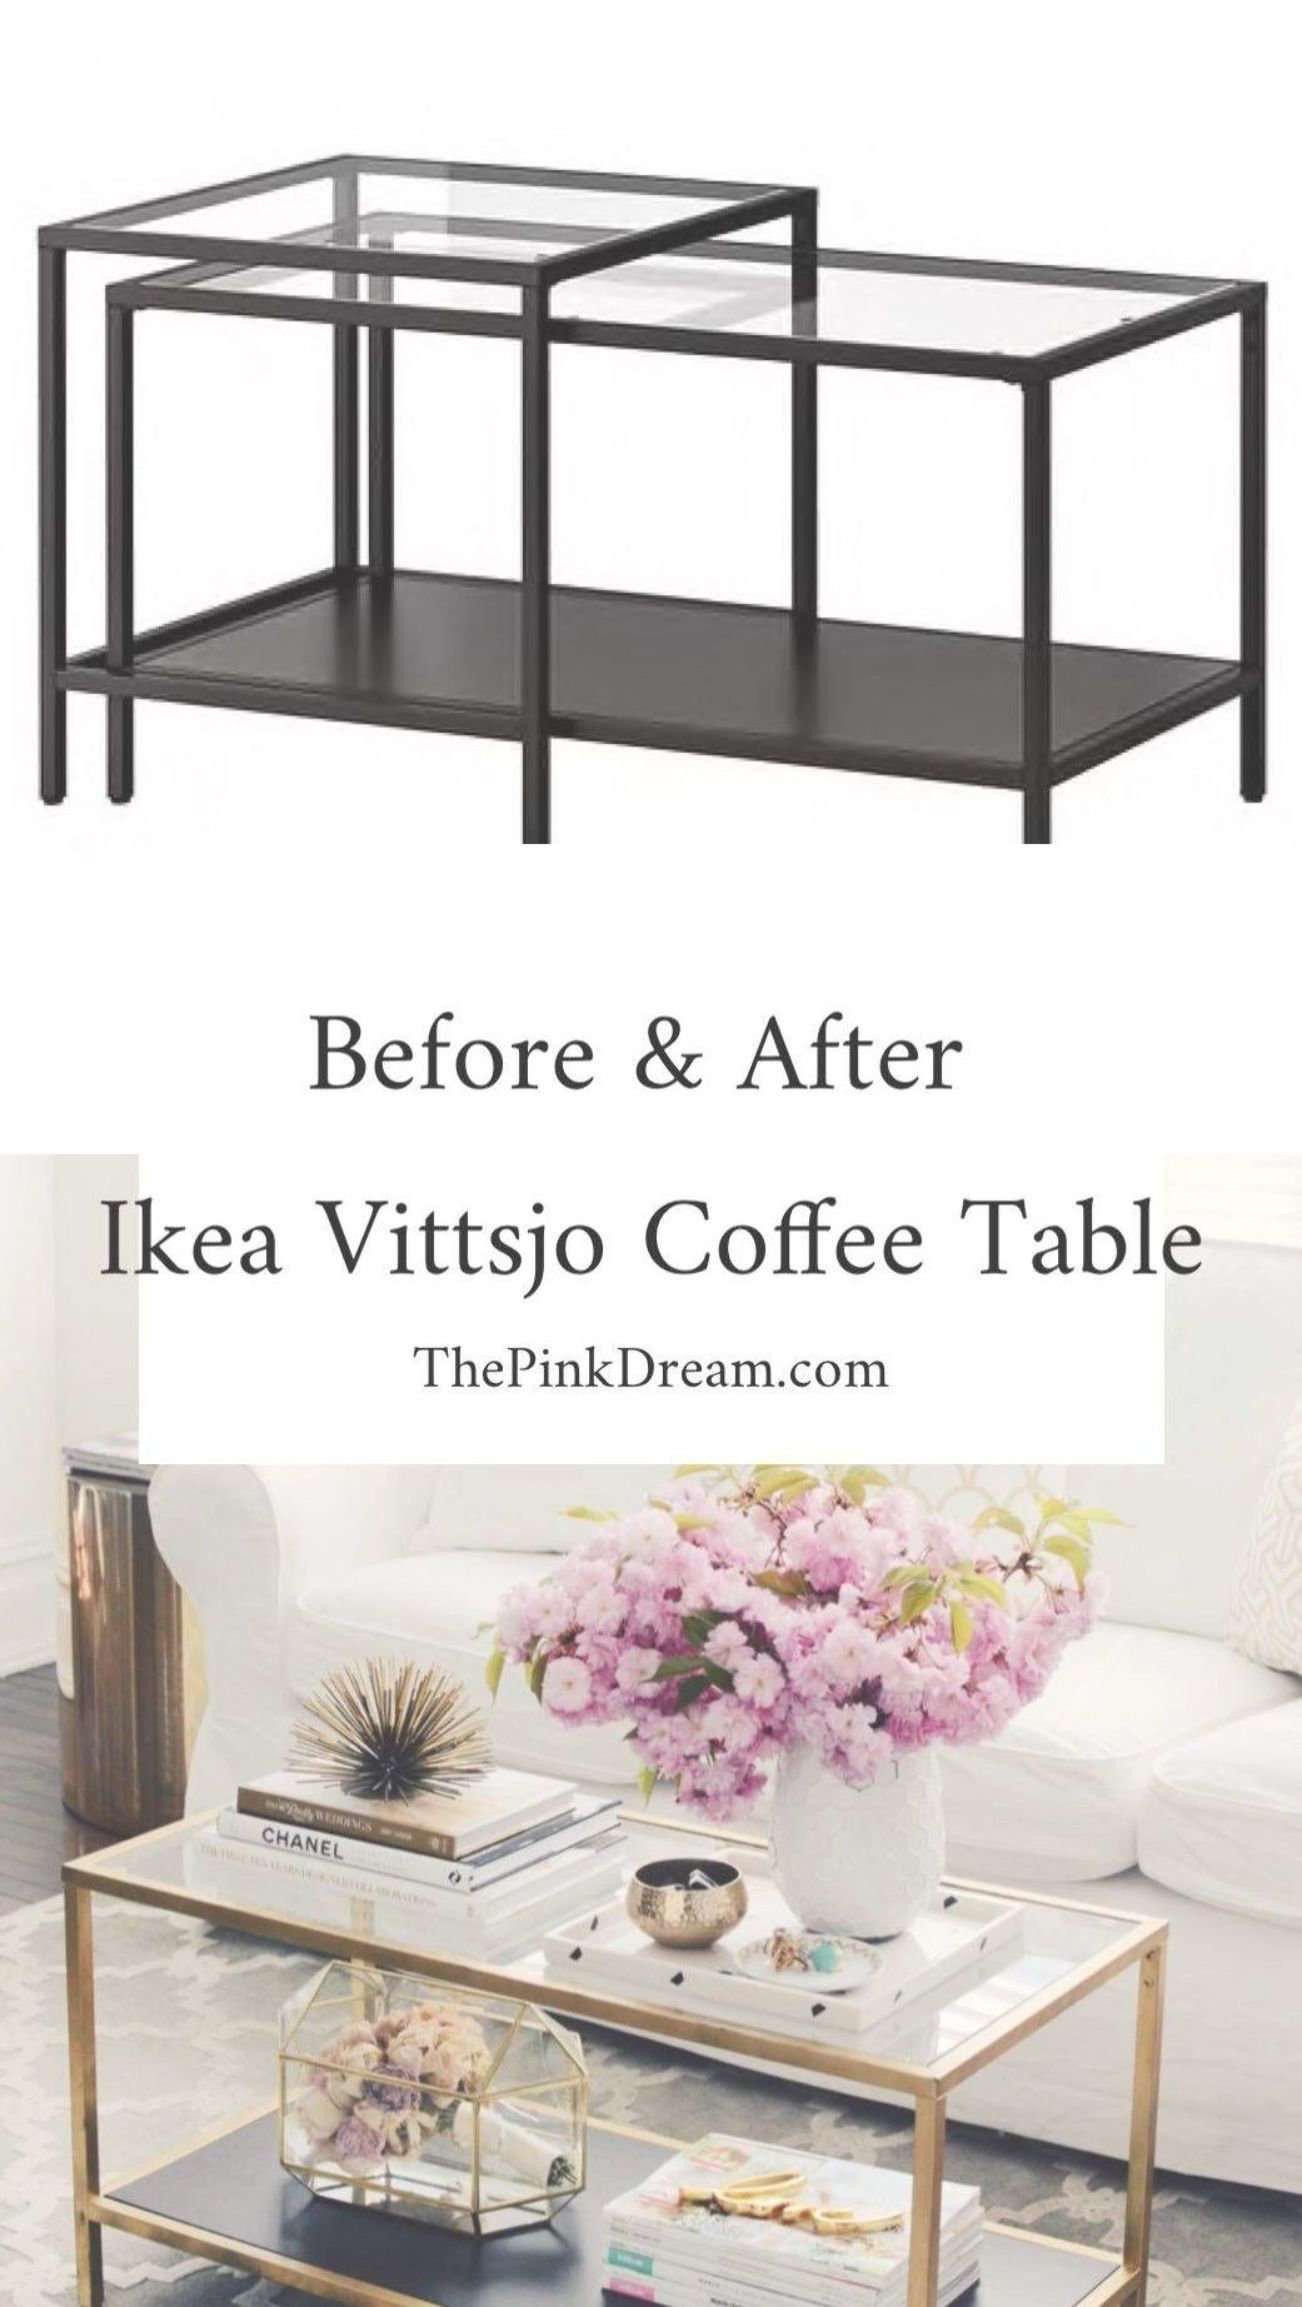 Details Of Ikea Vittsjo Coffee Table Hack Step By Step Ikea Vittsjo Tab